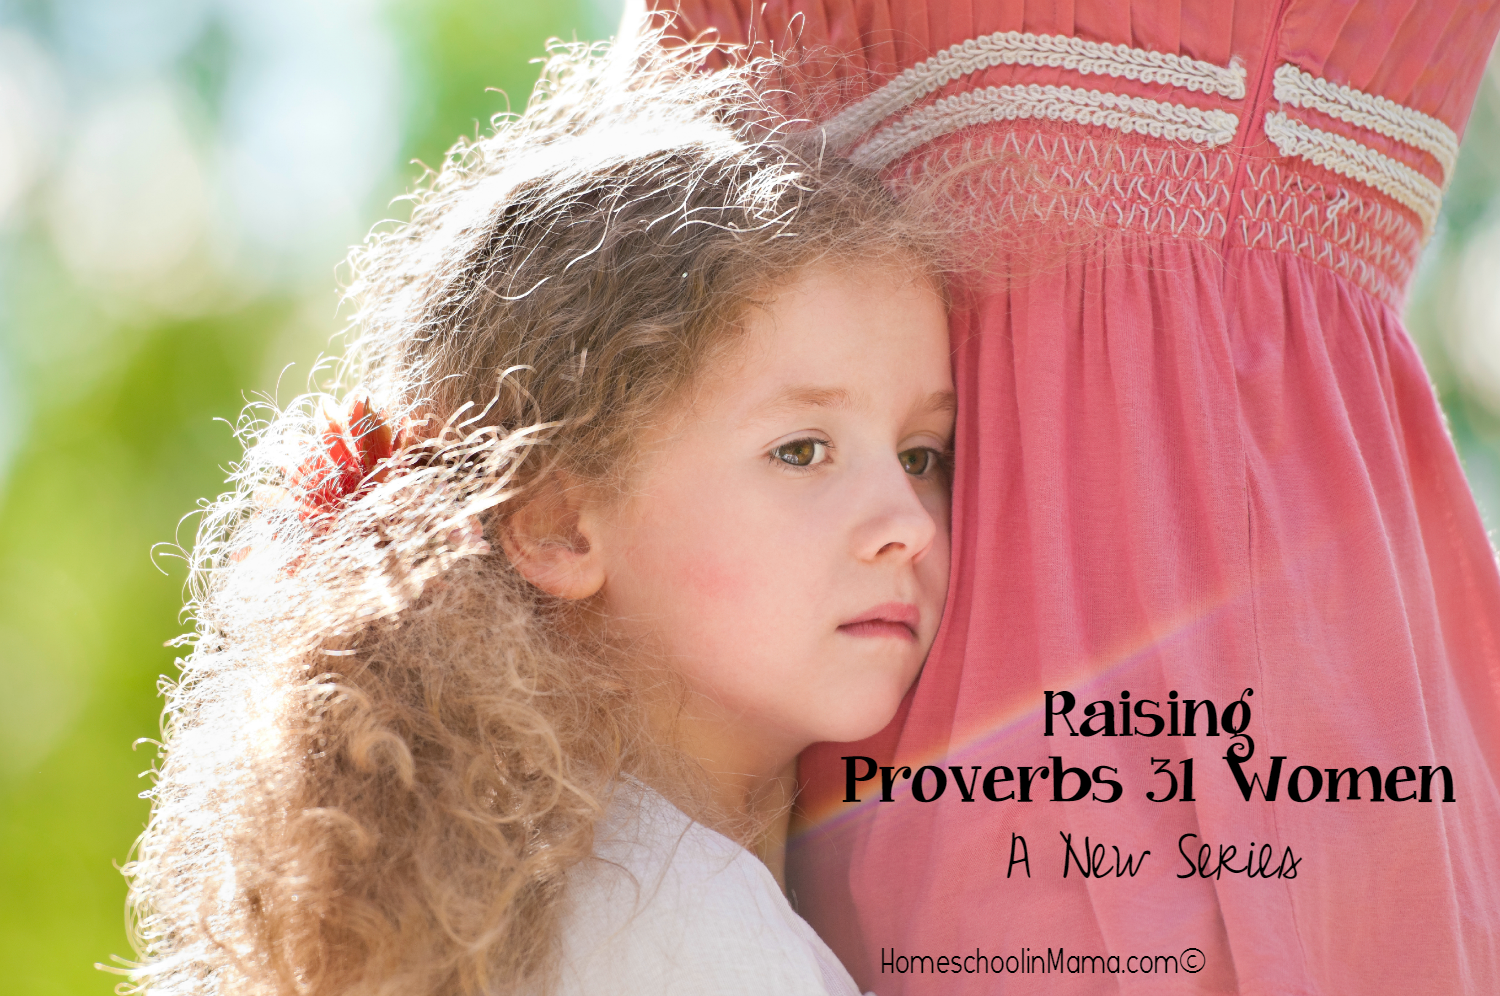 Raising Proverbs 31 Women